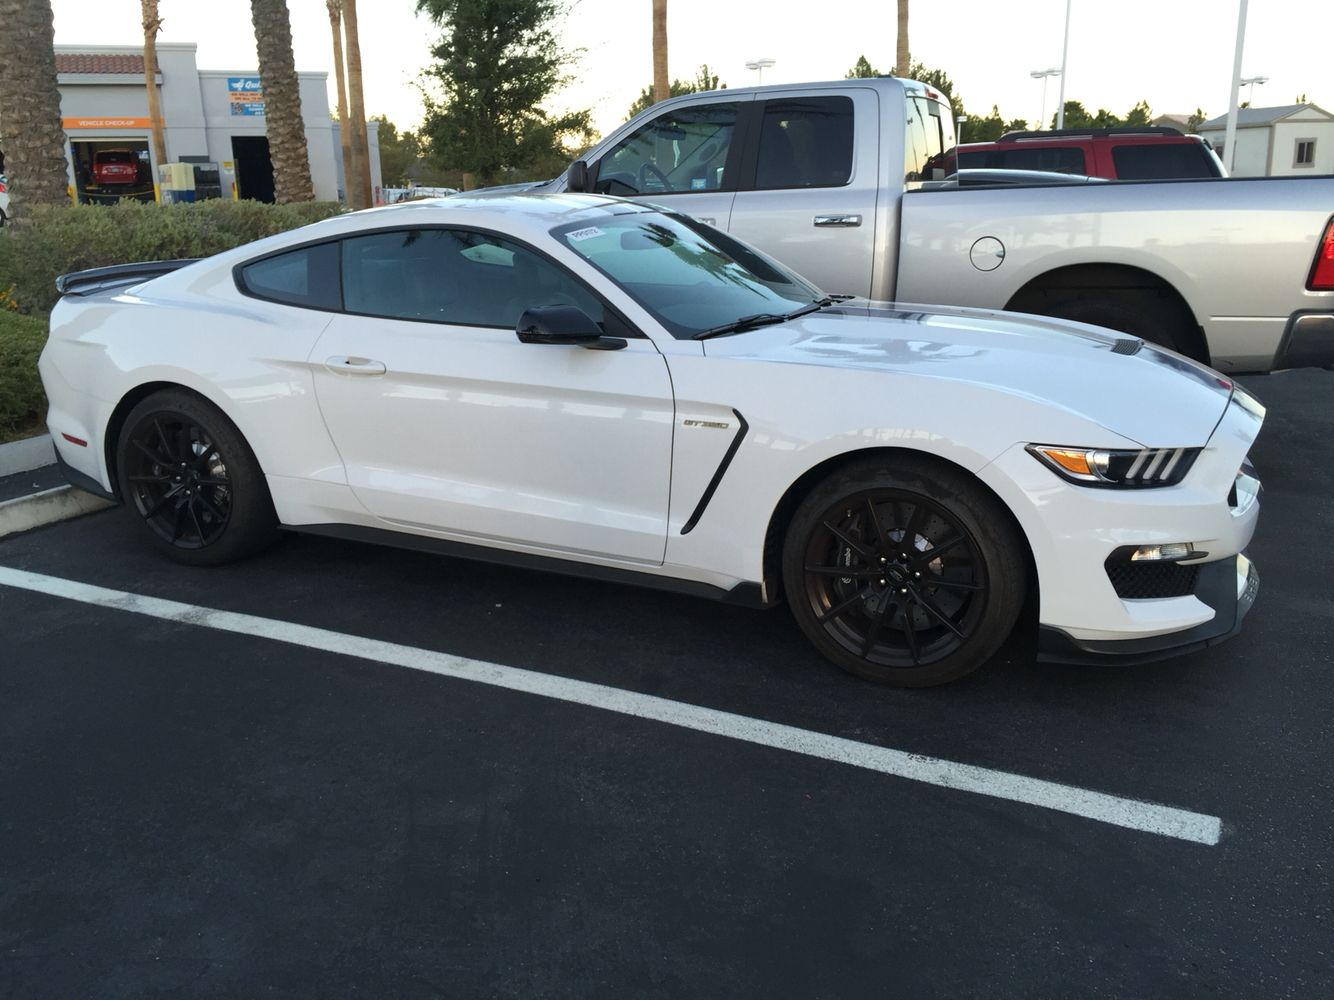 2016 Mustang Shelby Gt350 I Love The White And Black So Sexy